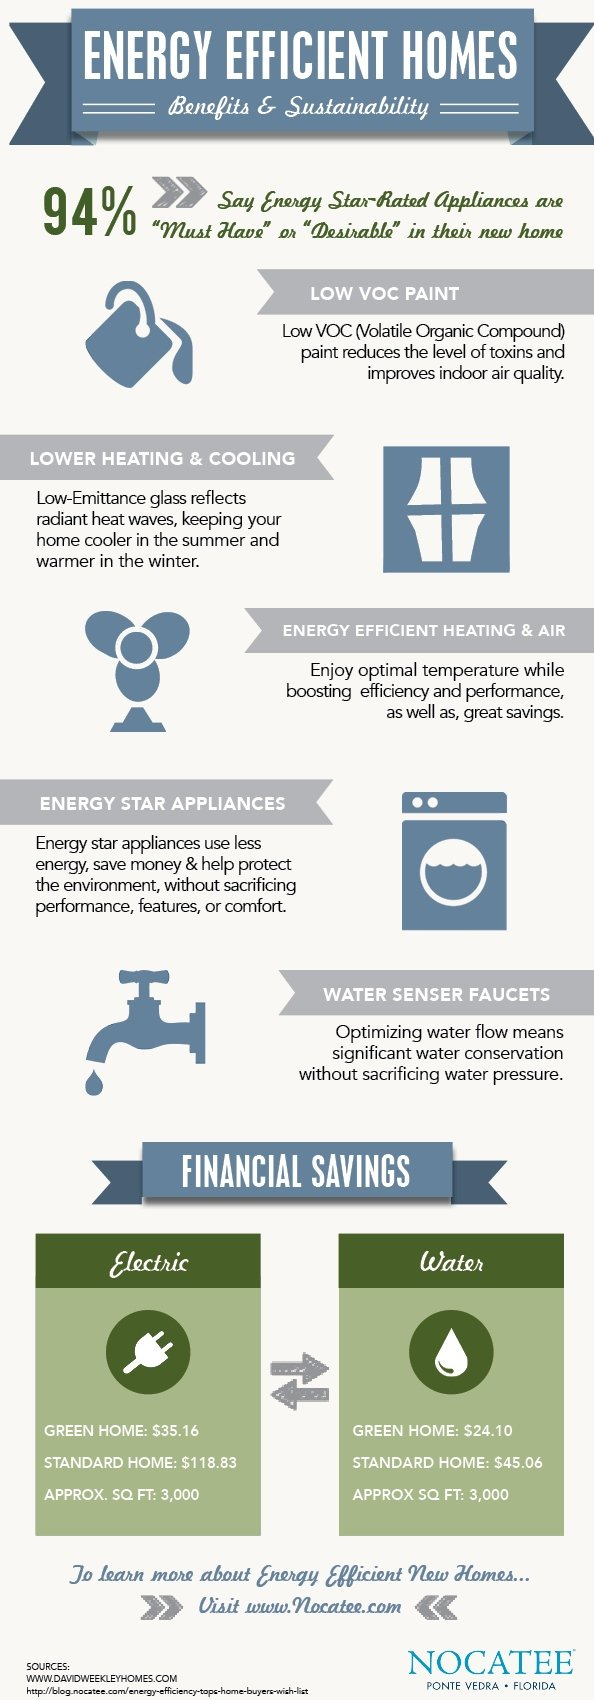 Benefits of Energy Efficient New Homes